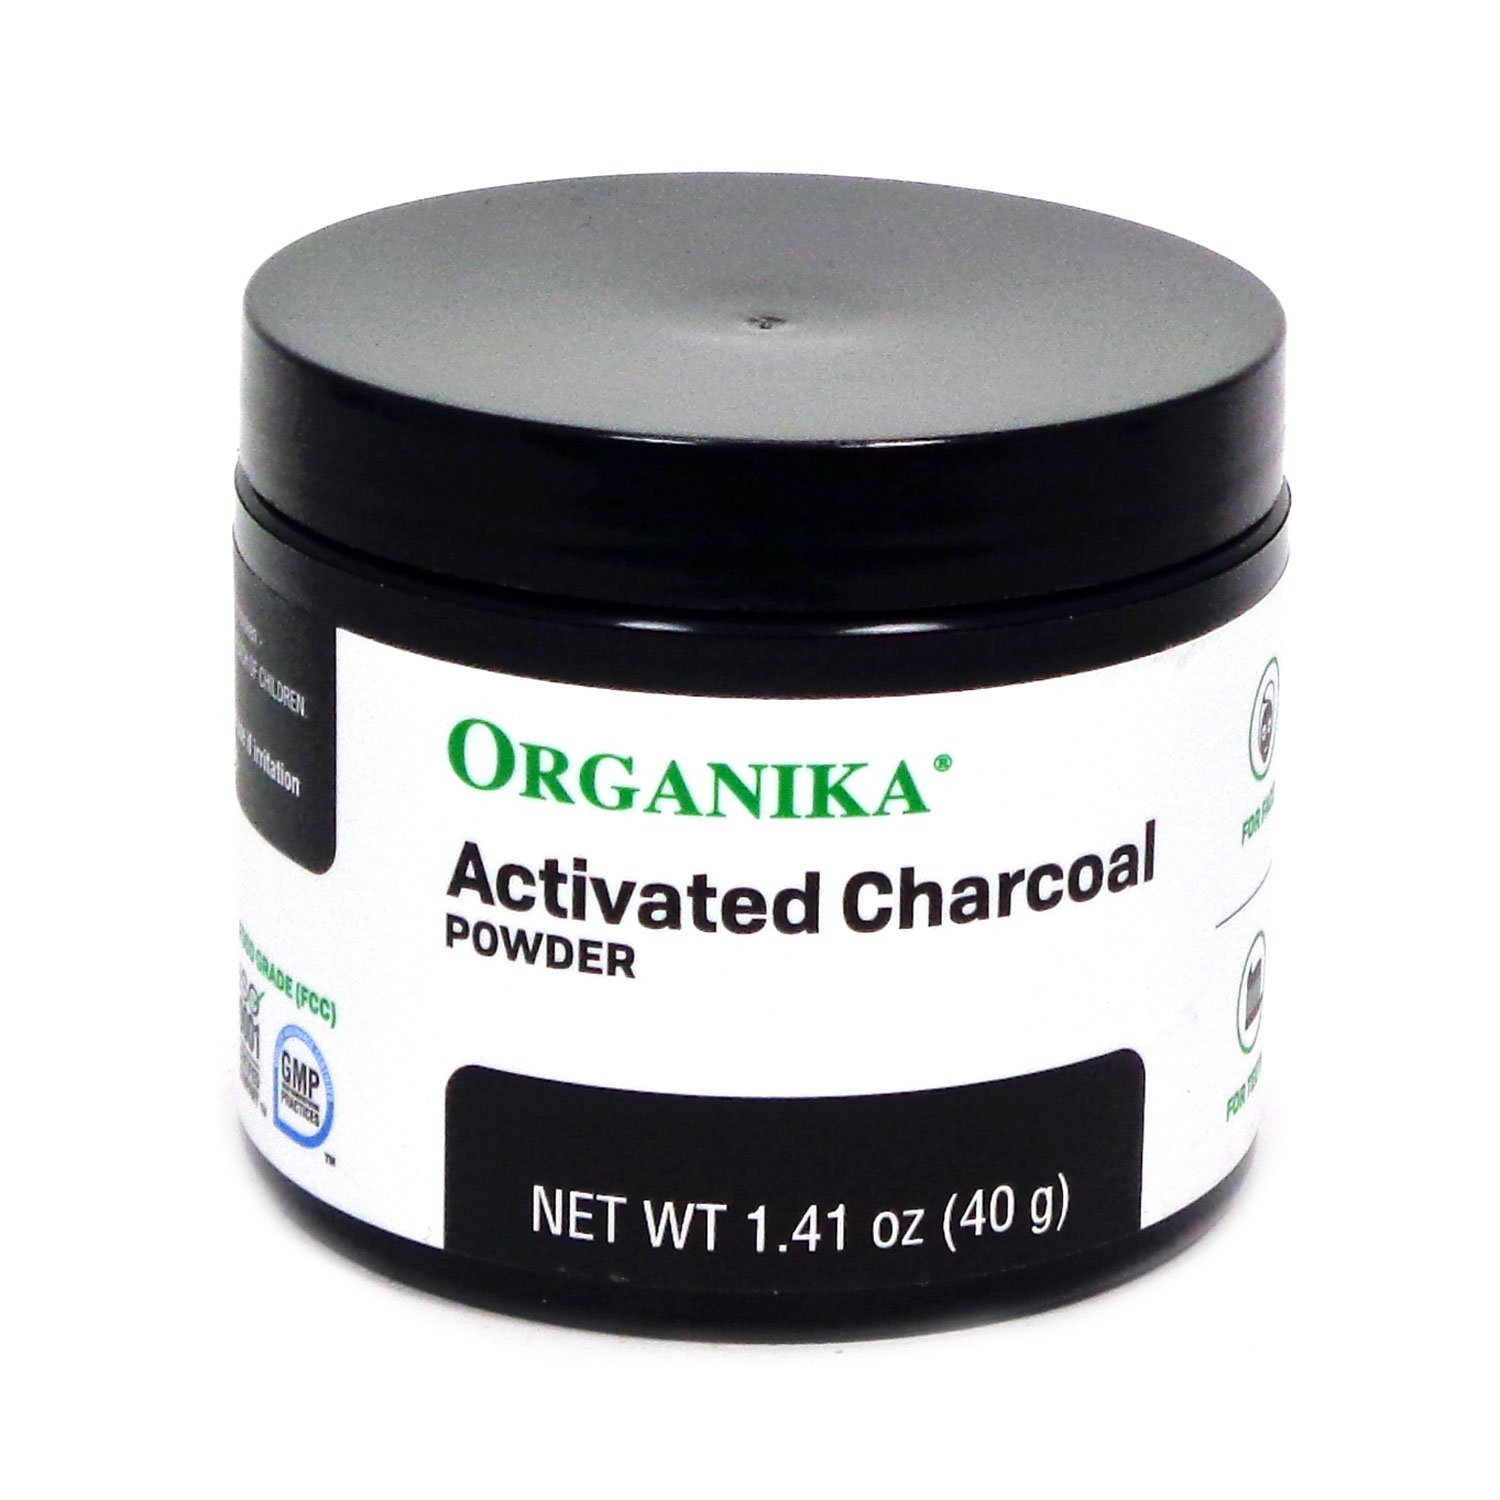 Organika Activated Charcoal Powder, 1.41 Ounce